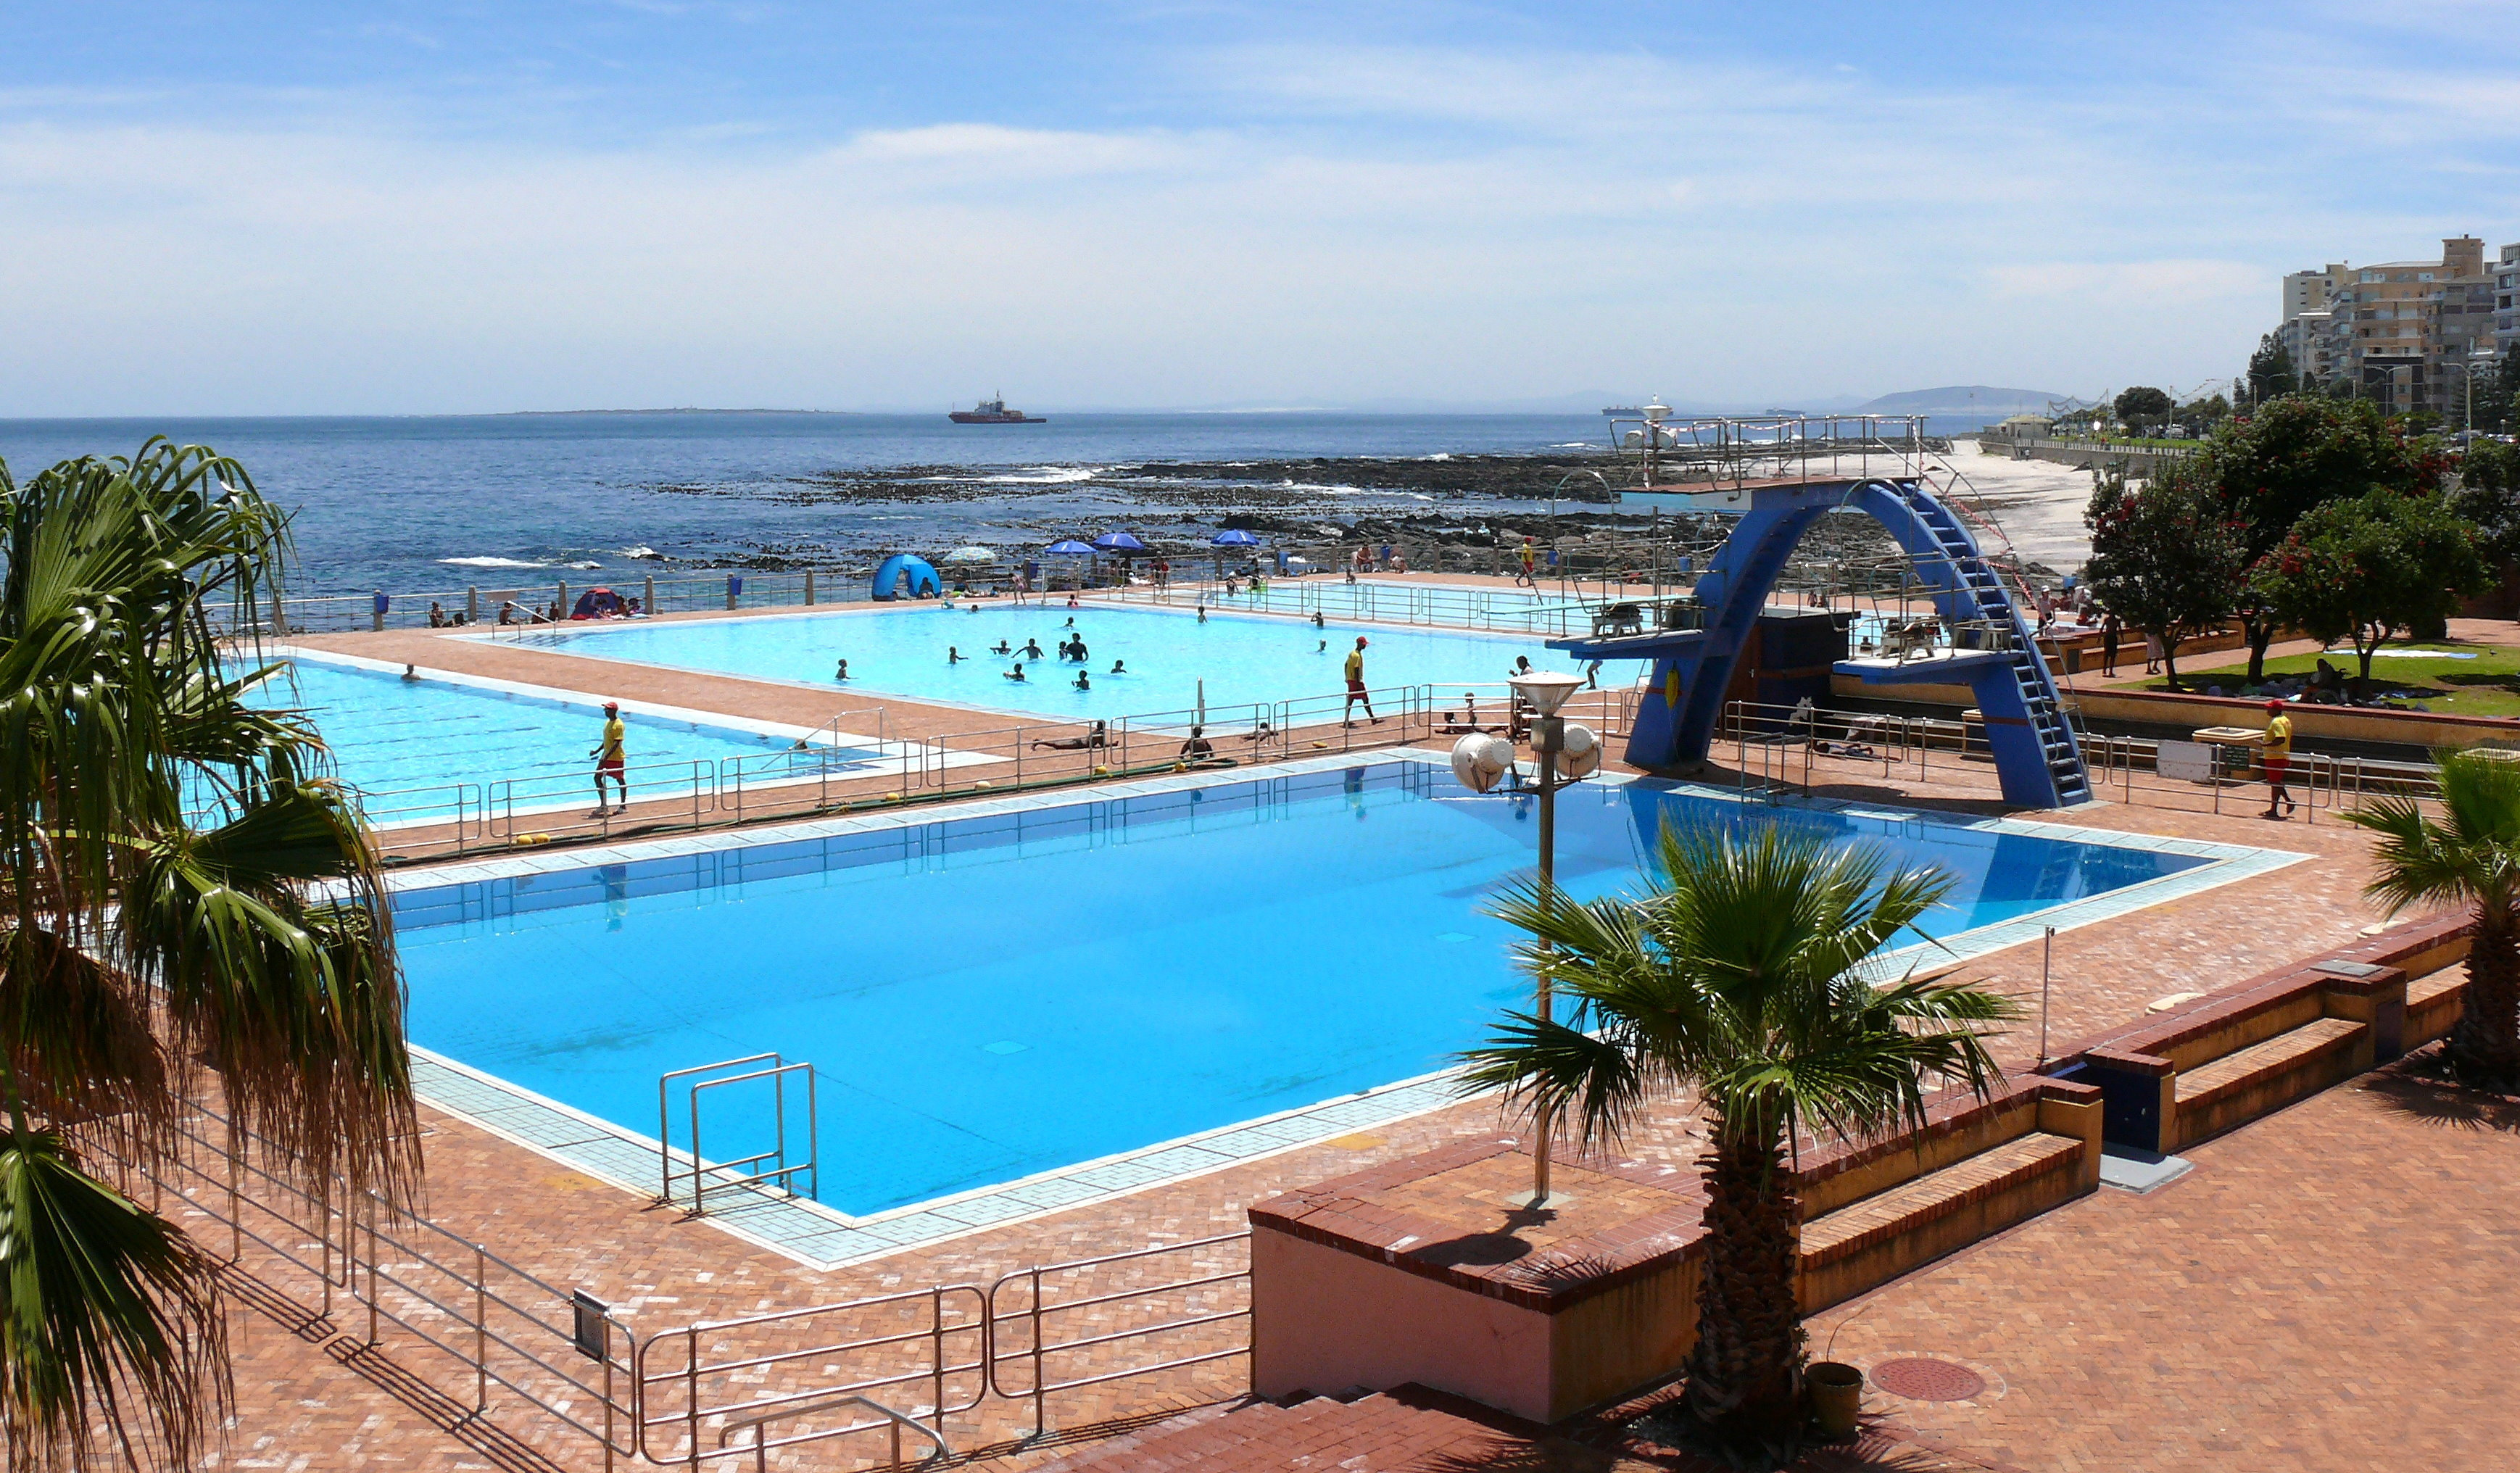 Cape Town Swimming Pools Will Keep It Cool This Holiday